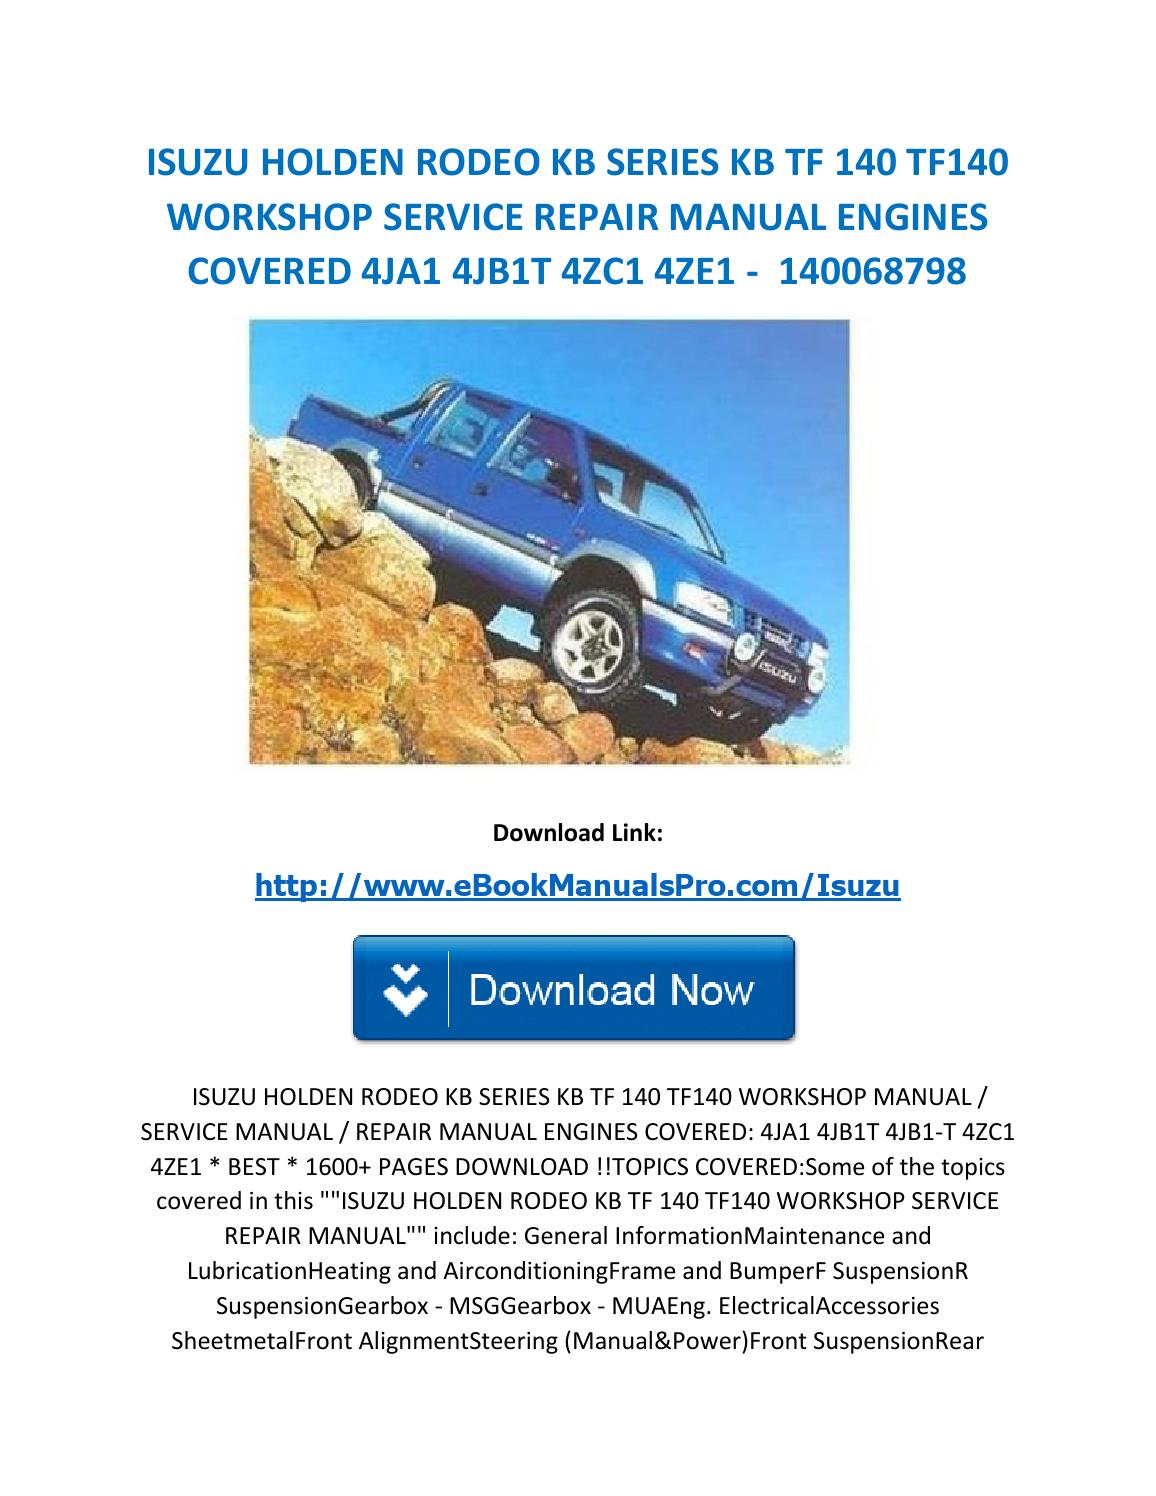 Isuzu holden rodeo kb series kb tf 140 tf140 workshop service repair manual  engines covered 4ja1 4jb by karl casino - issuu